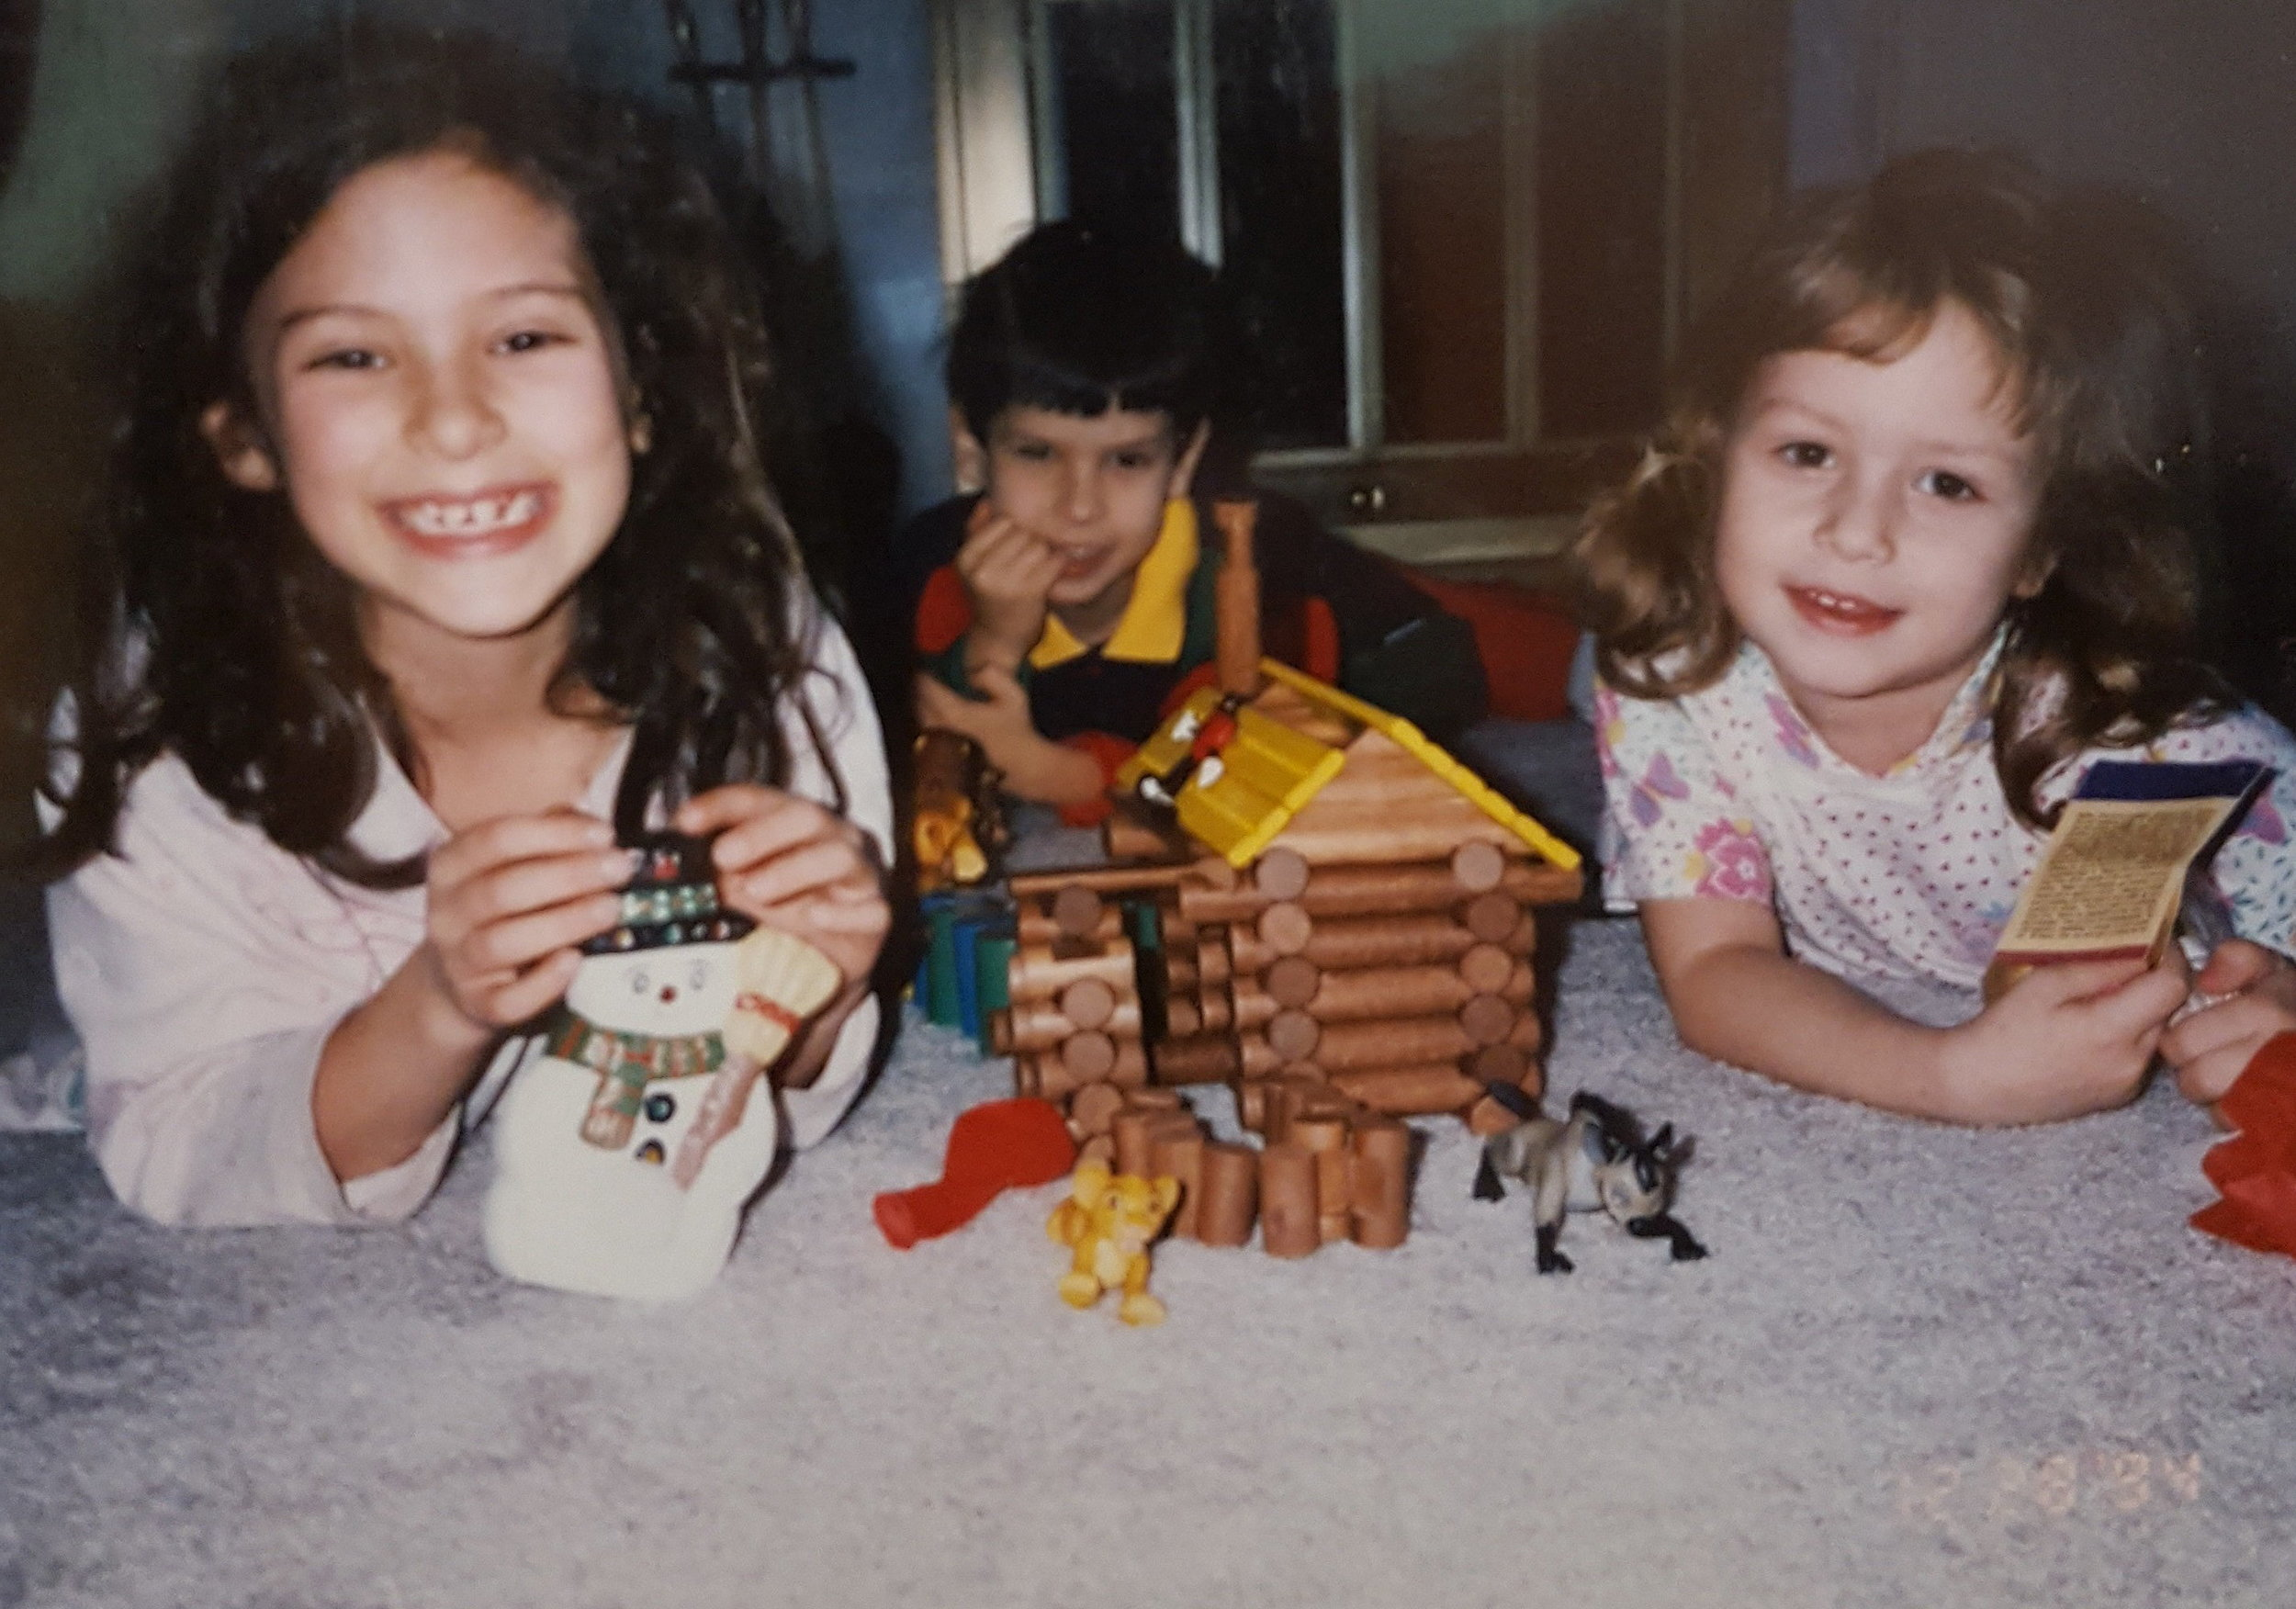 My first real memories are with my cousins, Lina and Mark. I always loved those Simba figurines. I actually found a couple pushed back in a drawer in the guest room at Babushka's house a couple of years ago and it made me really happy. Chicago, 1994.